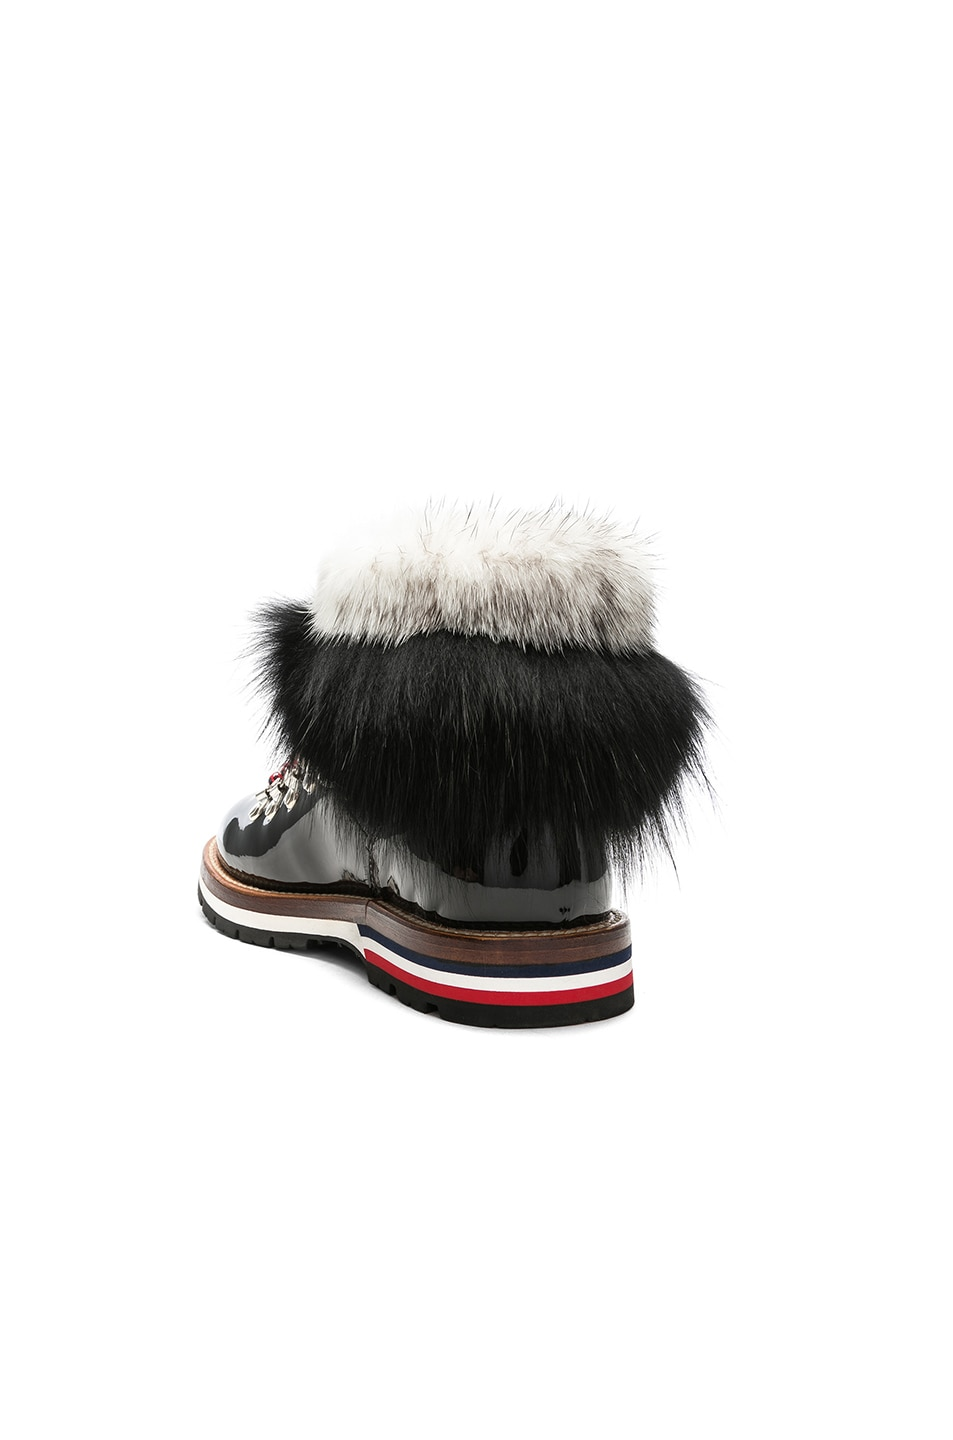 Image 3 of Moncler Patent Leather Solange Scarpa Boots With Mink Fur in Black